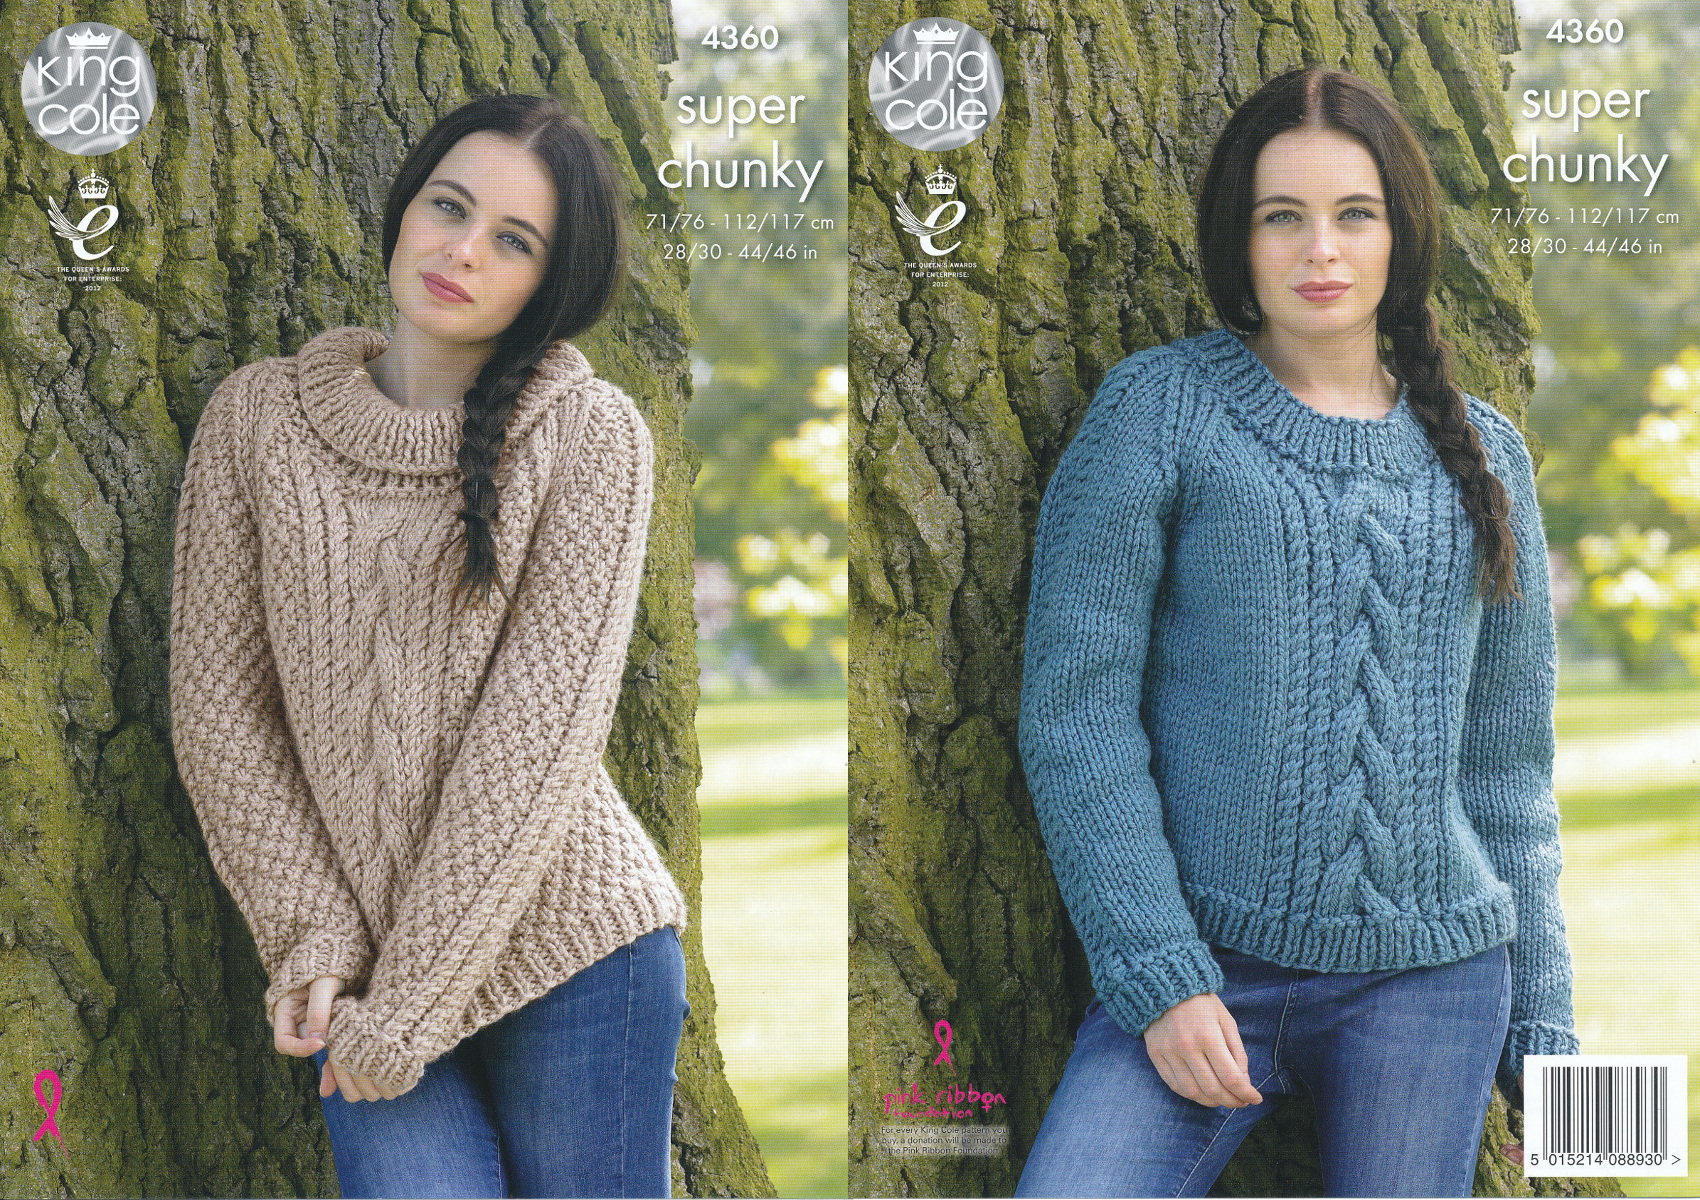 Chunky Knit Jumper Pattern : Ladies Super Chunky Knitting Pattern King Cole Cable Knit Sweaters Jumpers 43...